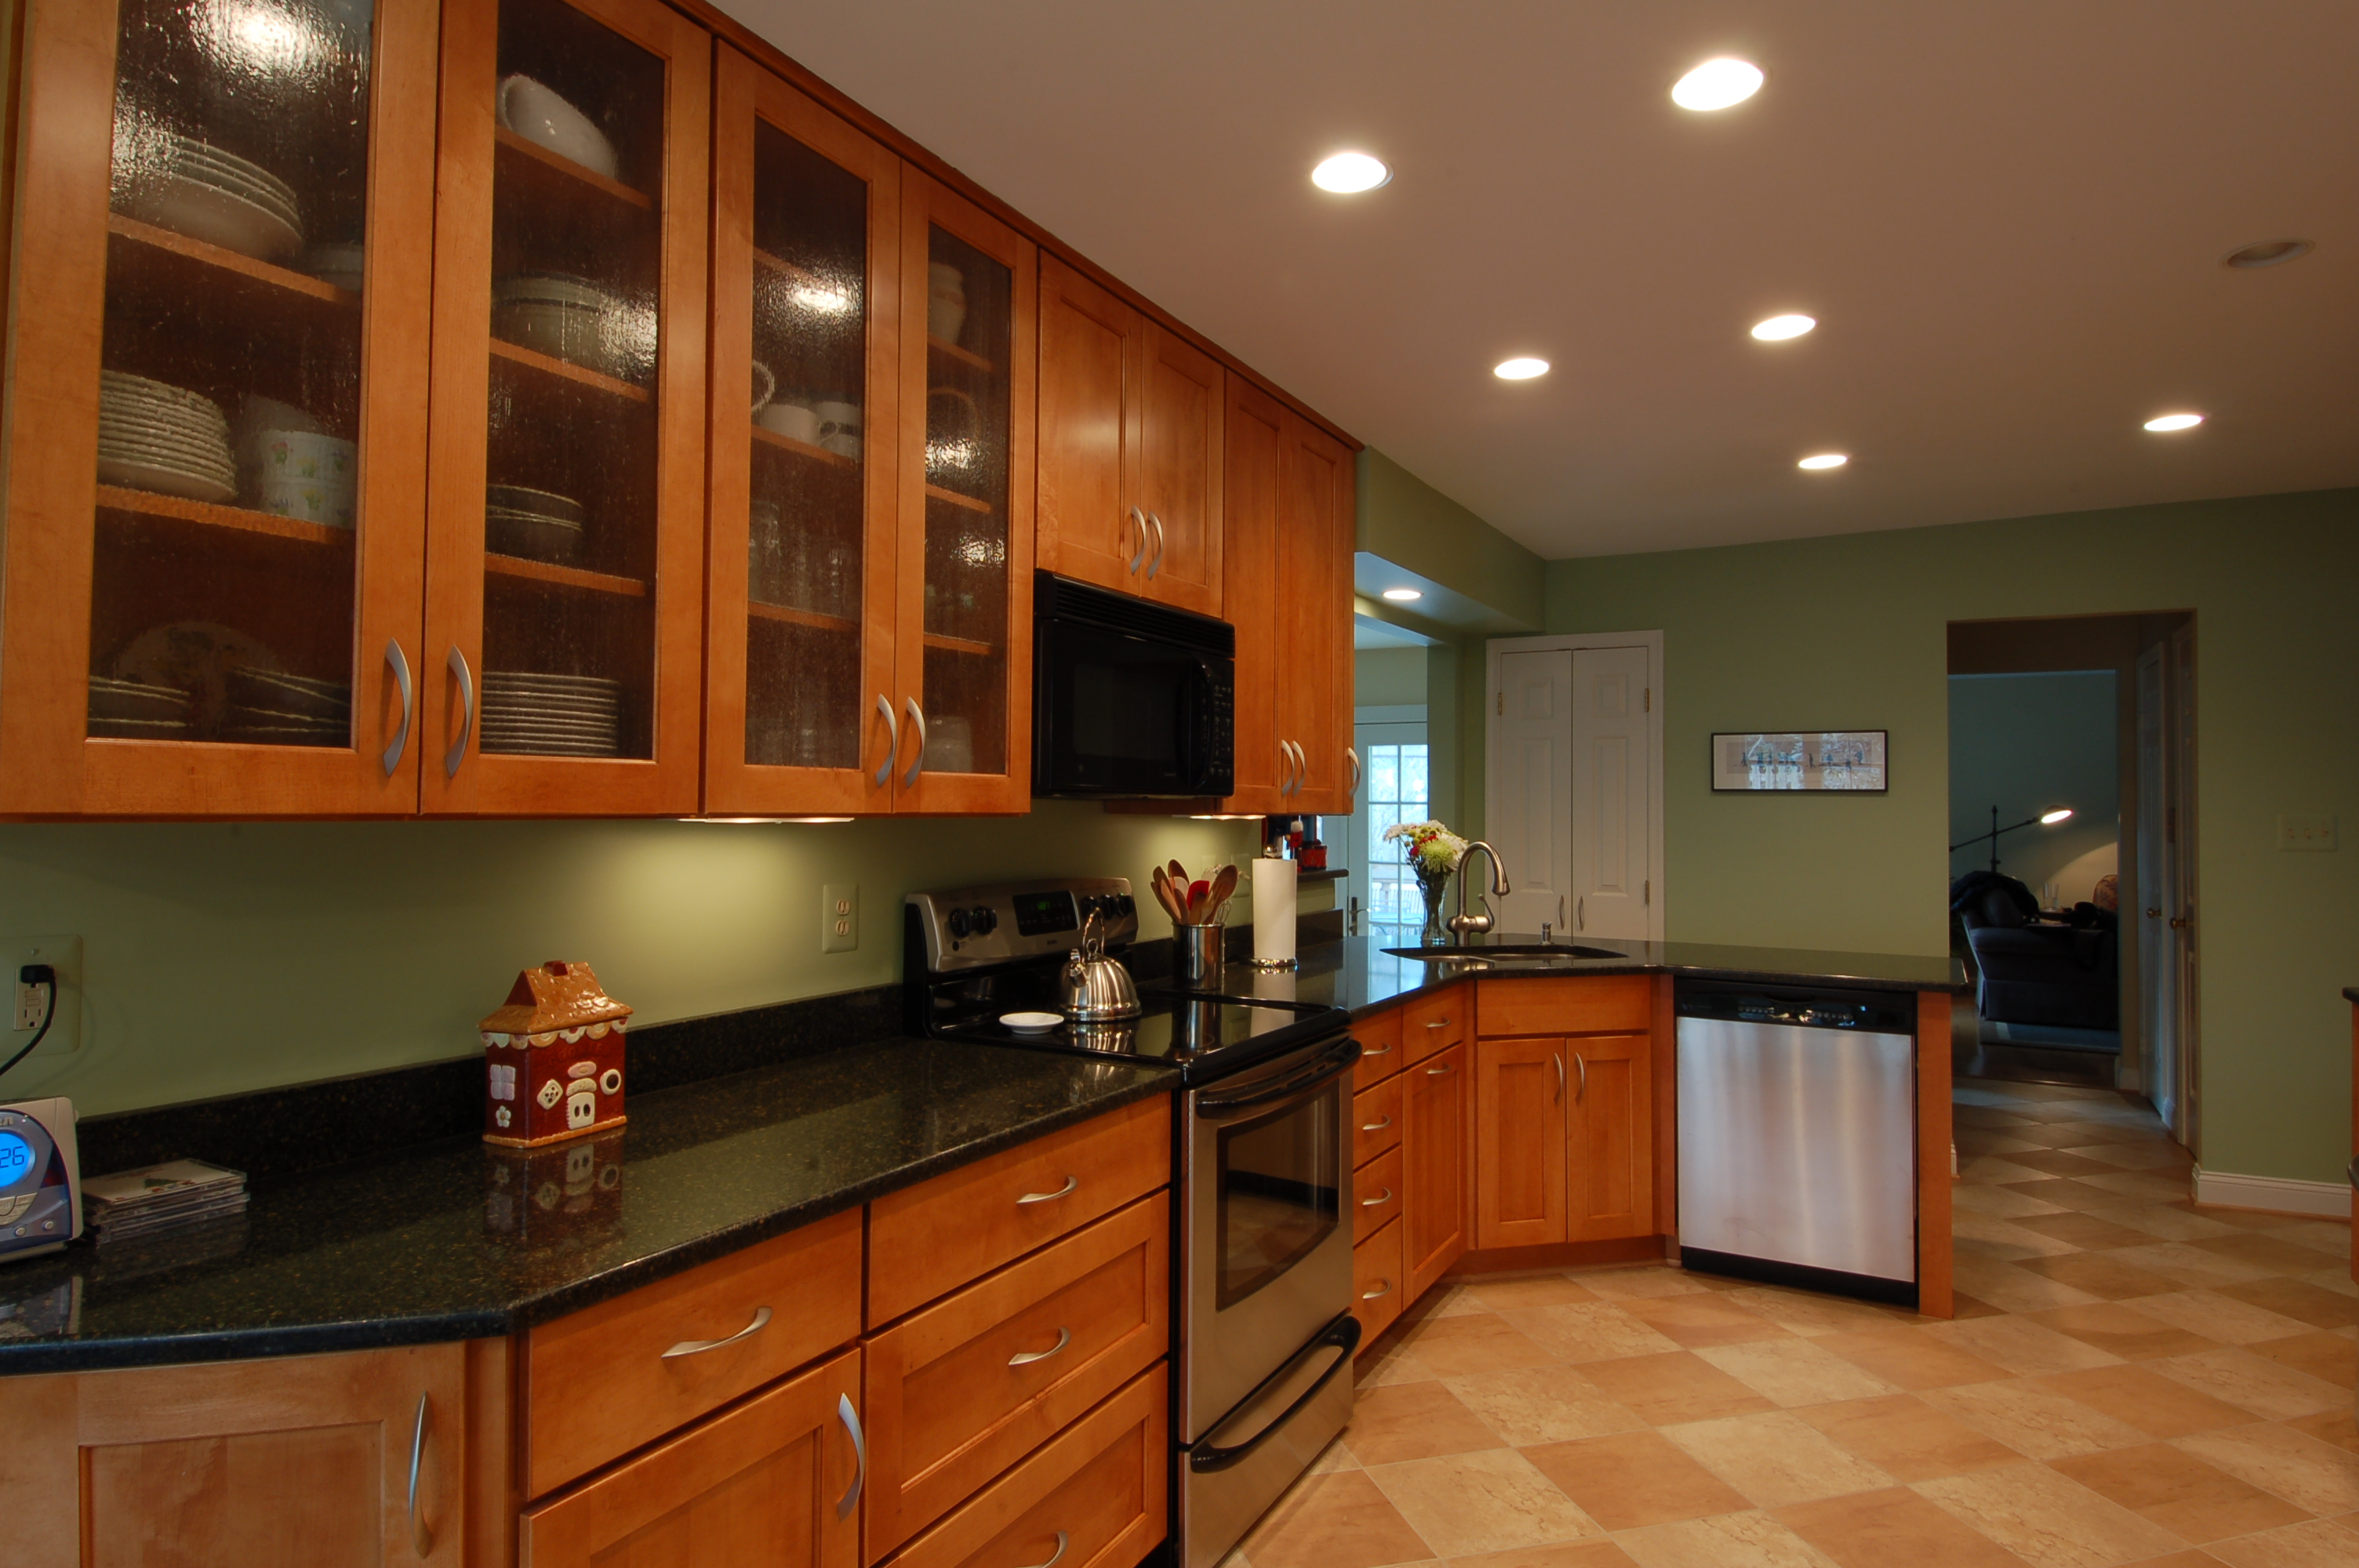 kitchen flooring options kitchen flooring options Pros